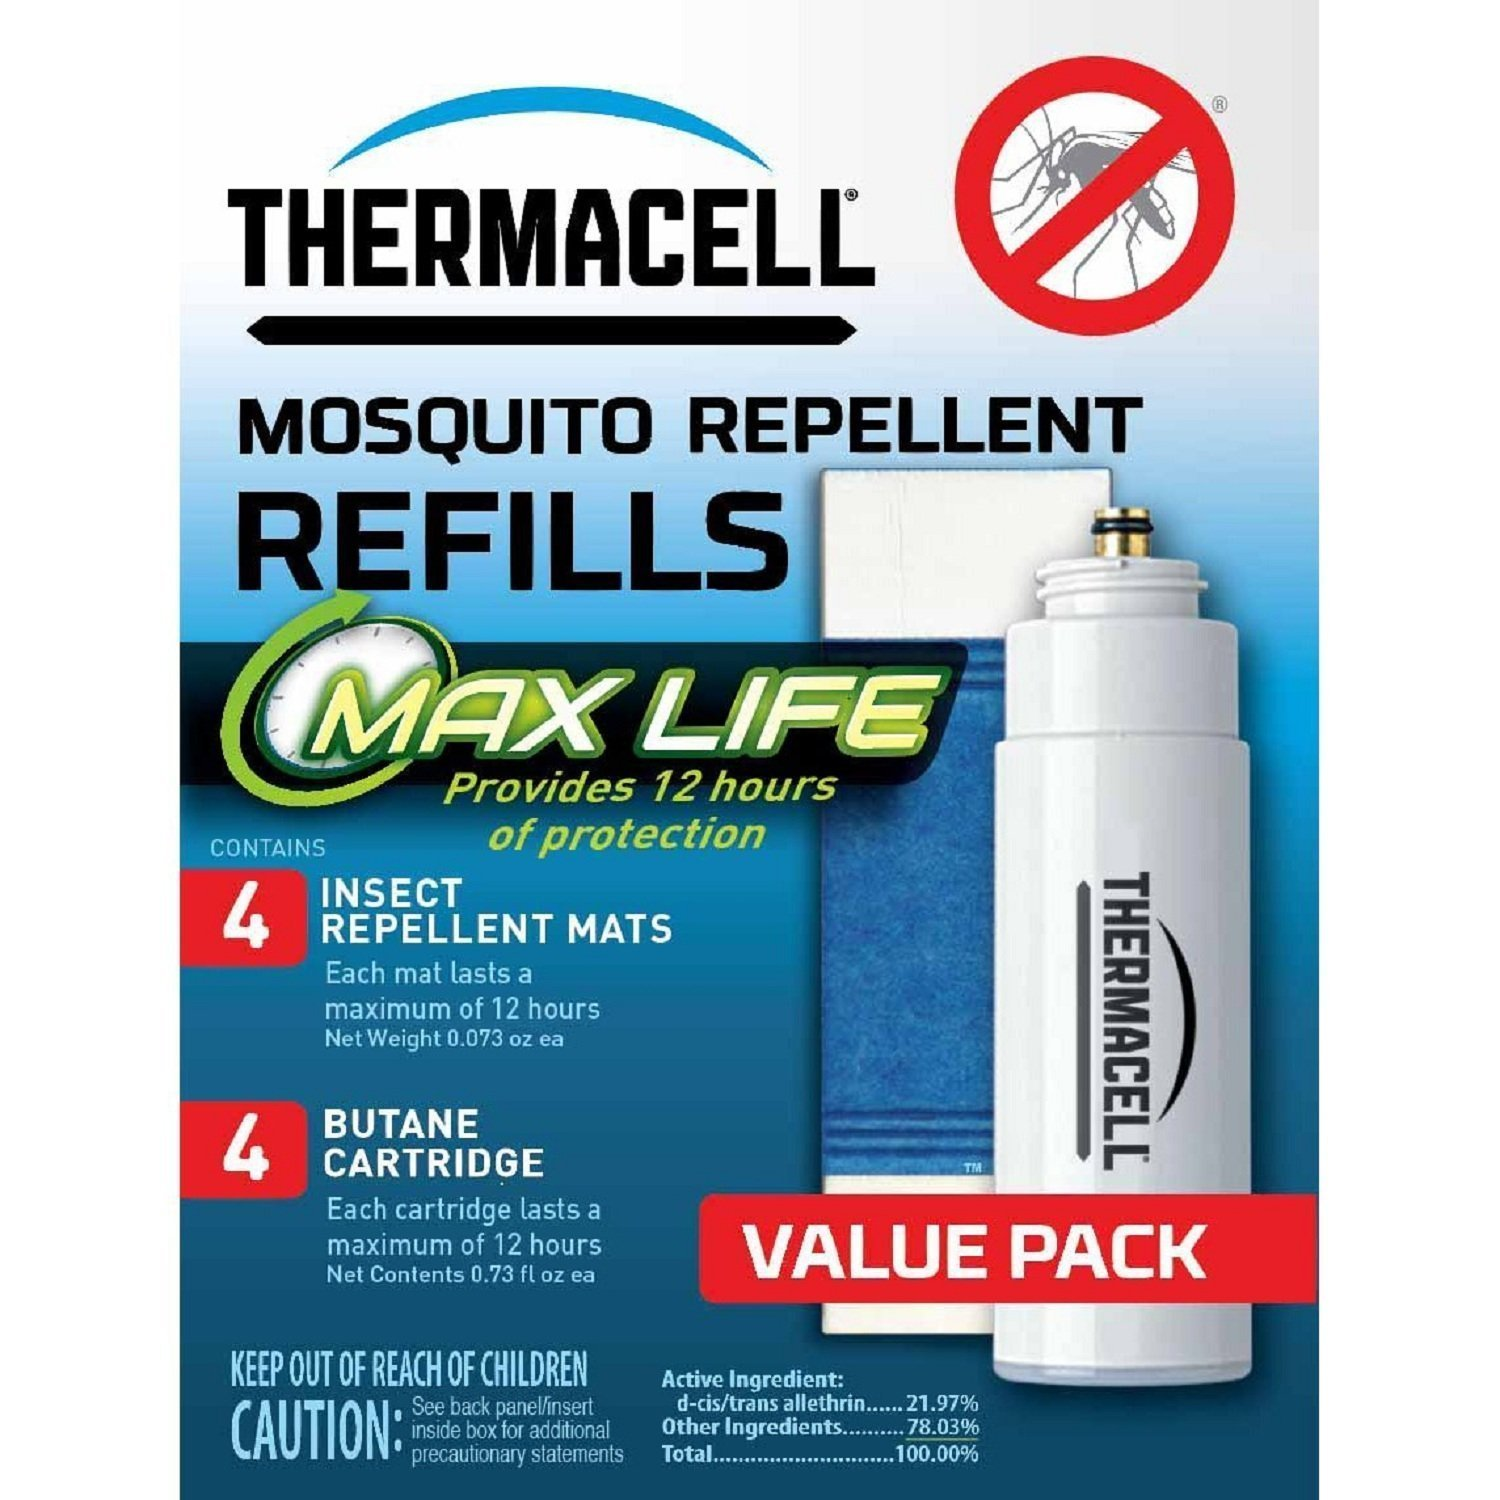 max life thermacell refills